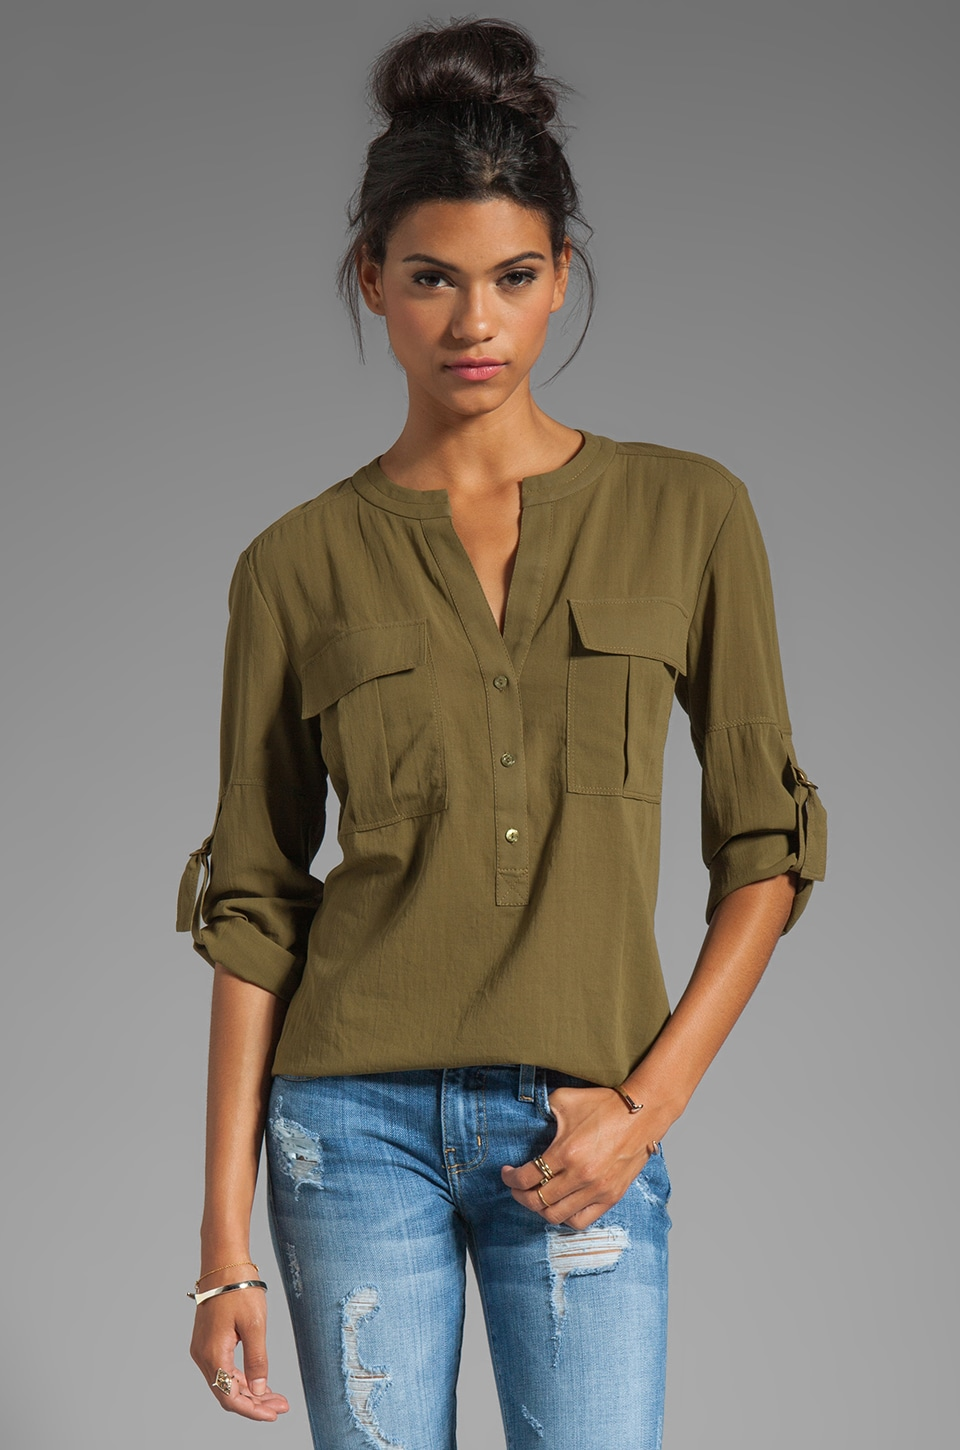 Trina Turk Cloud 9 Cotton mesh Jemison Blouse in Olive